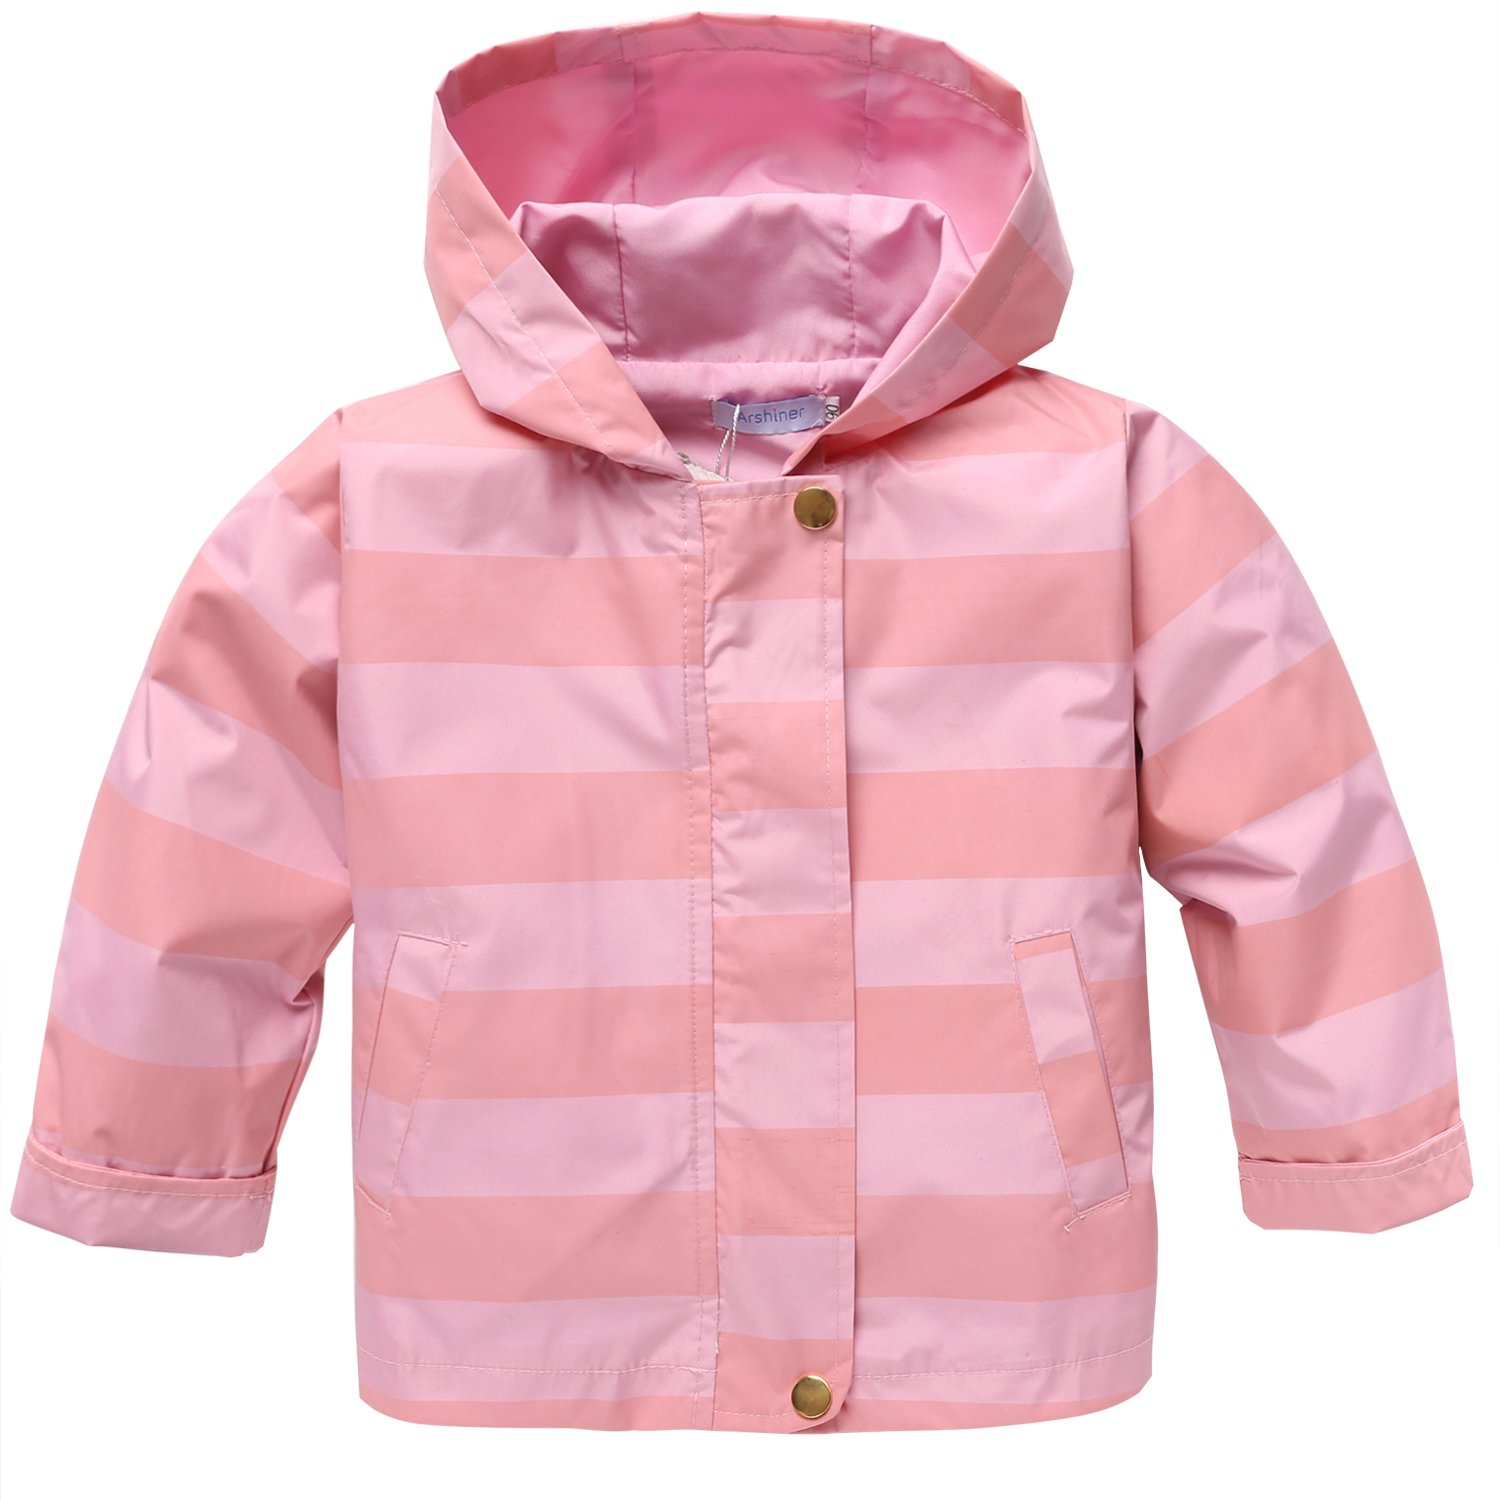 Arshiner Girls Baby Waterproof Rain Coat Jacket Outwear Trench With Hooded **AMM004998_P_110